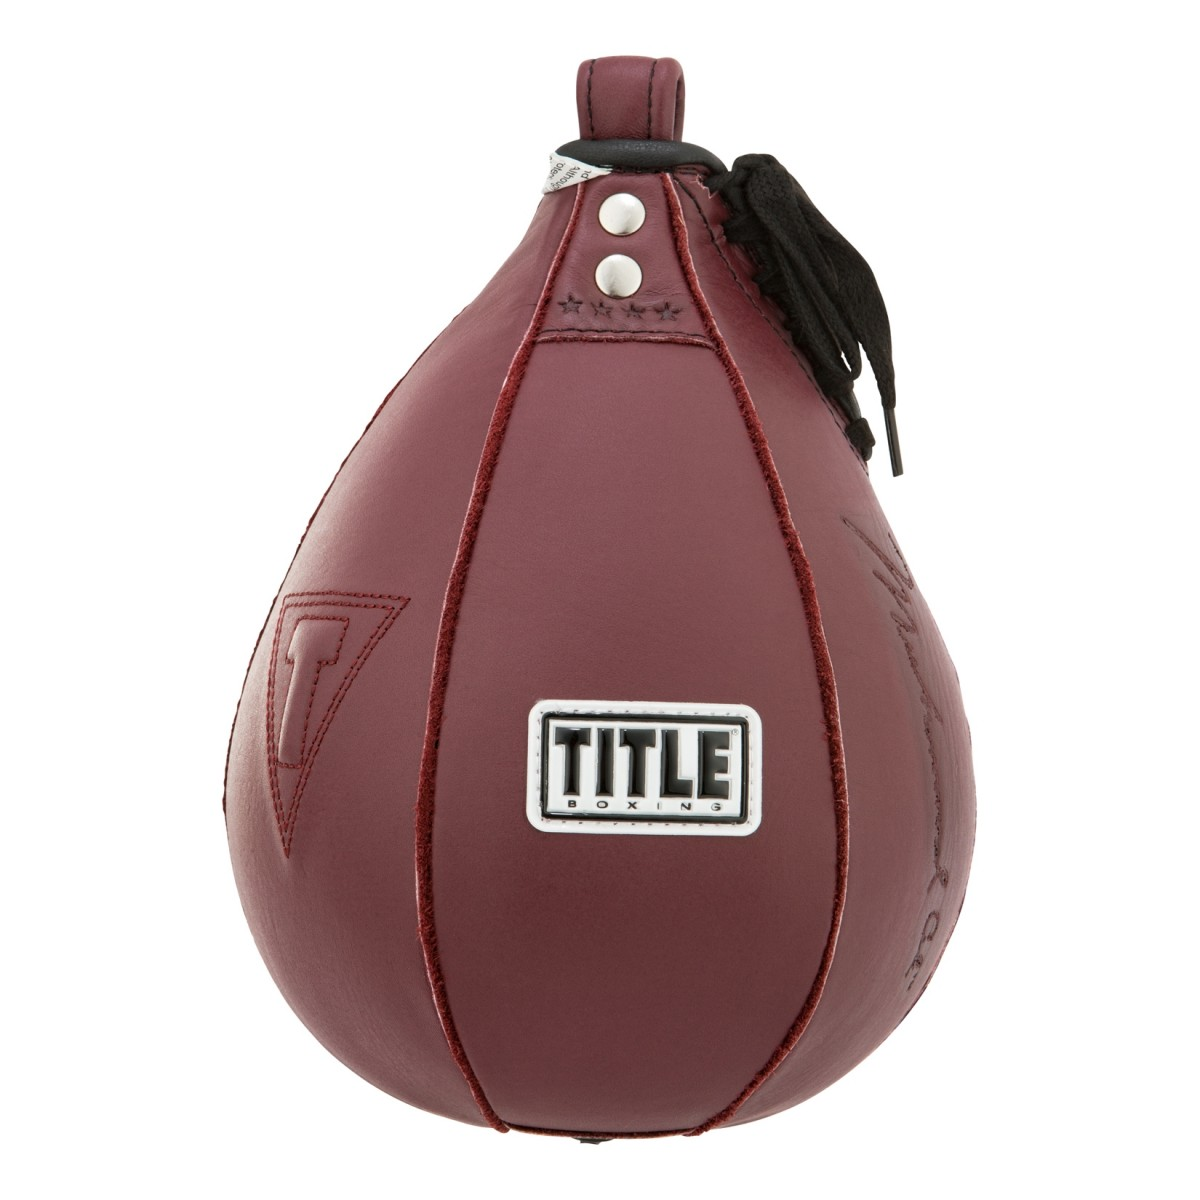 Title Boxing Ali Authentic Leather Double End Bag Maroon